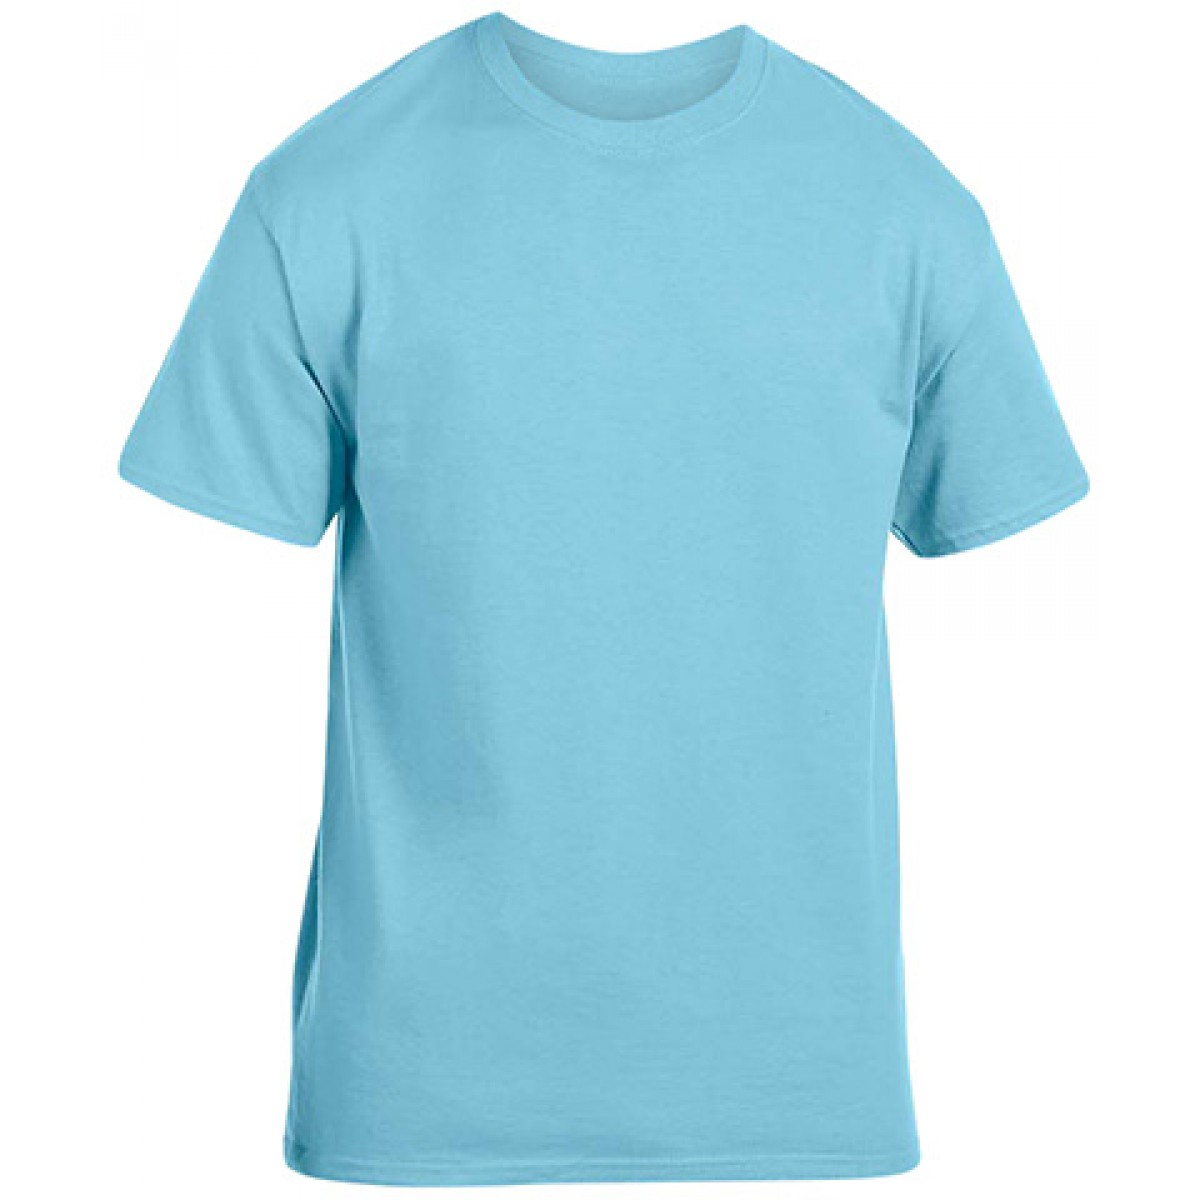 Soft 100% Cotton T-Shirt-Sky Blue-M